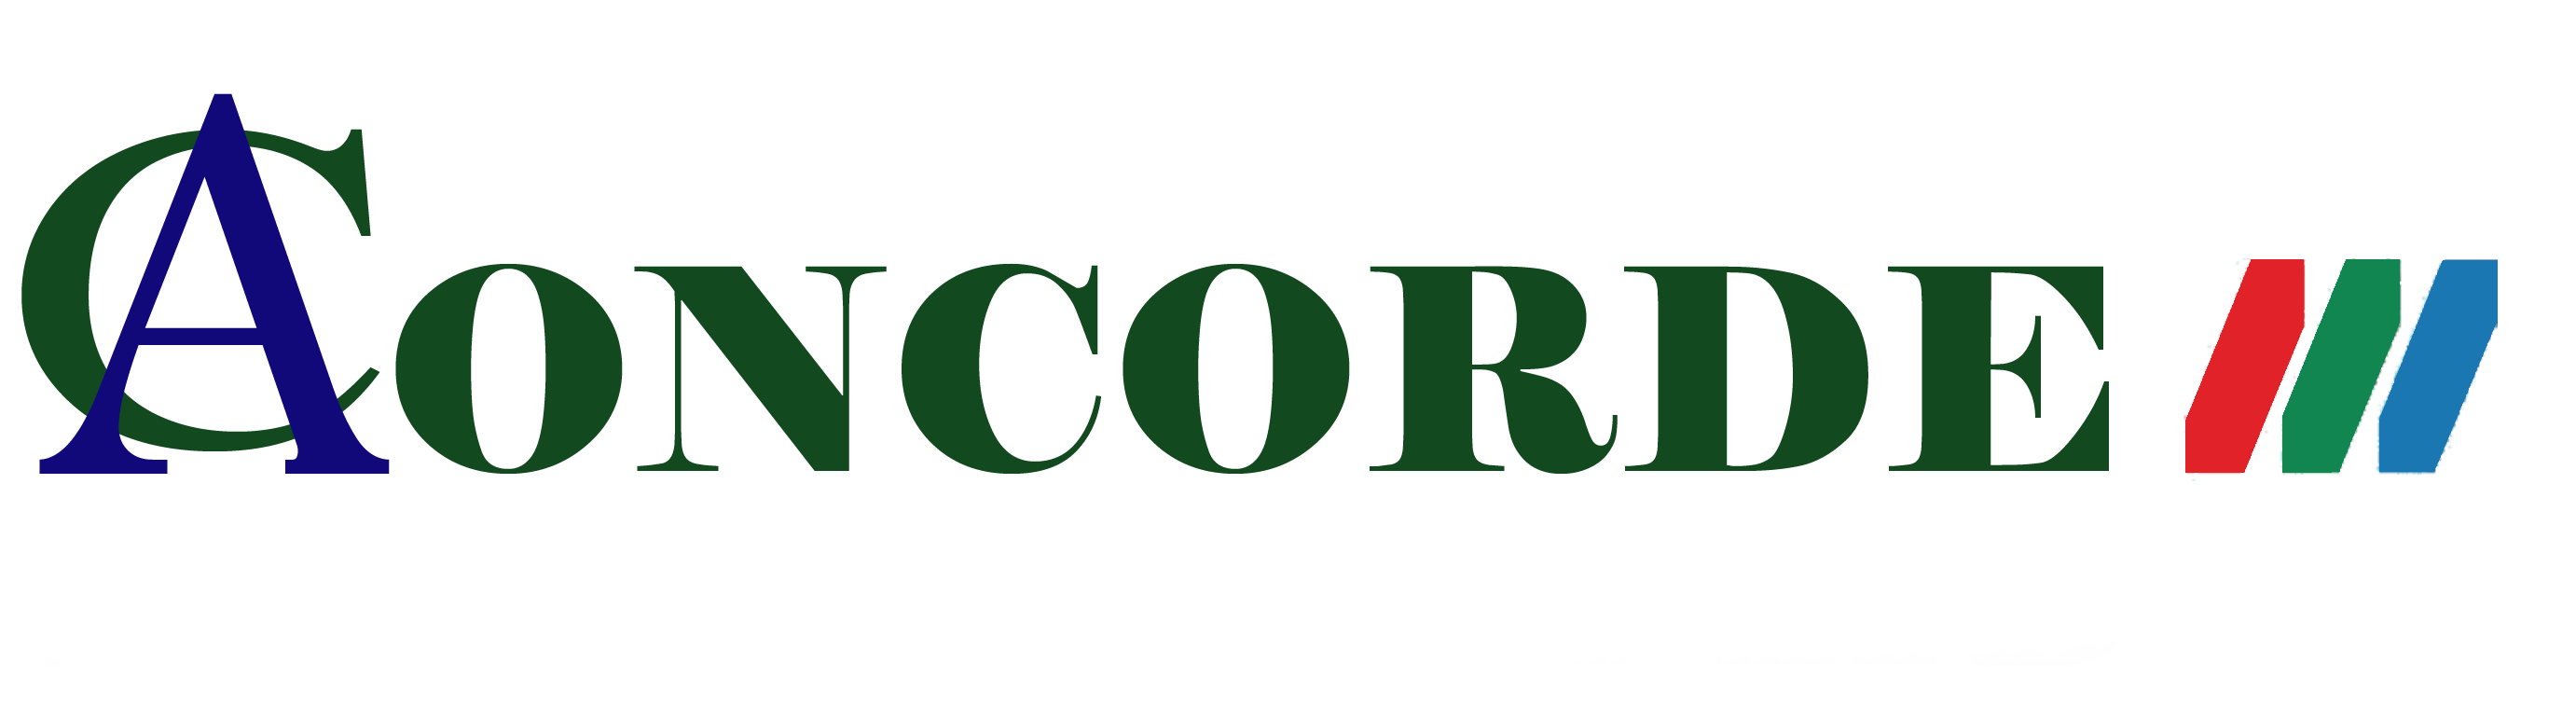 Concorde Security Pte Ltd